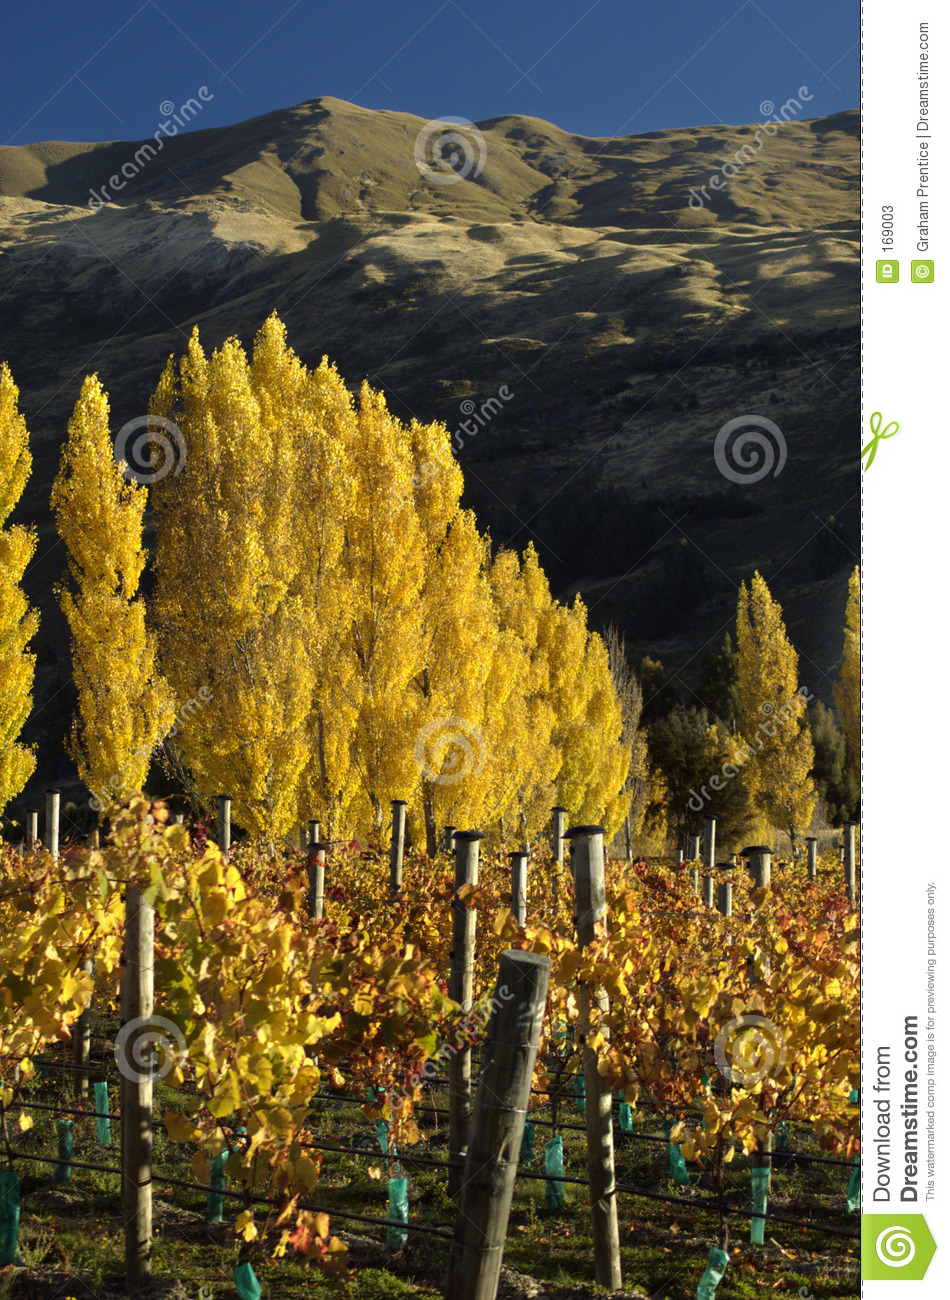 Vineyards in Fall